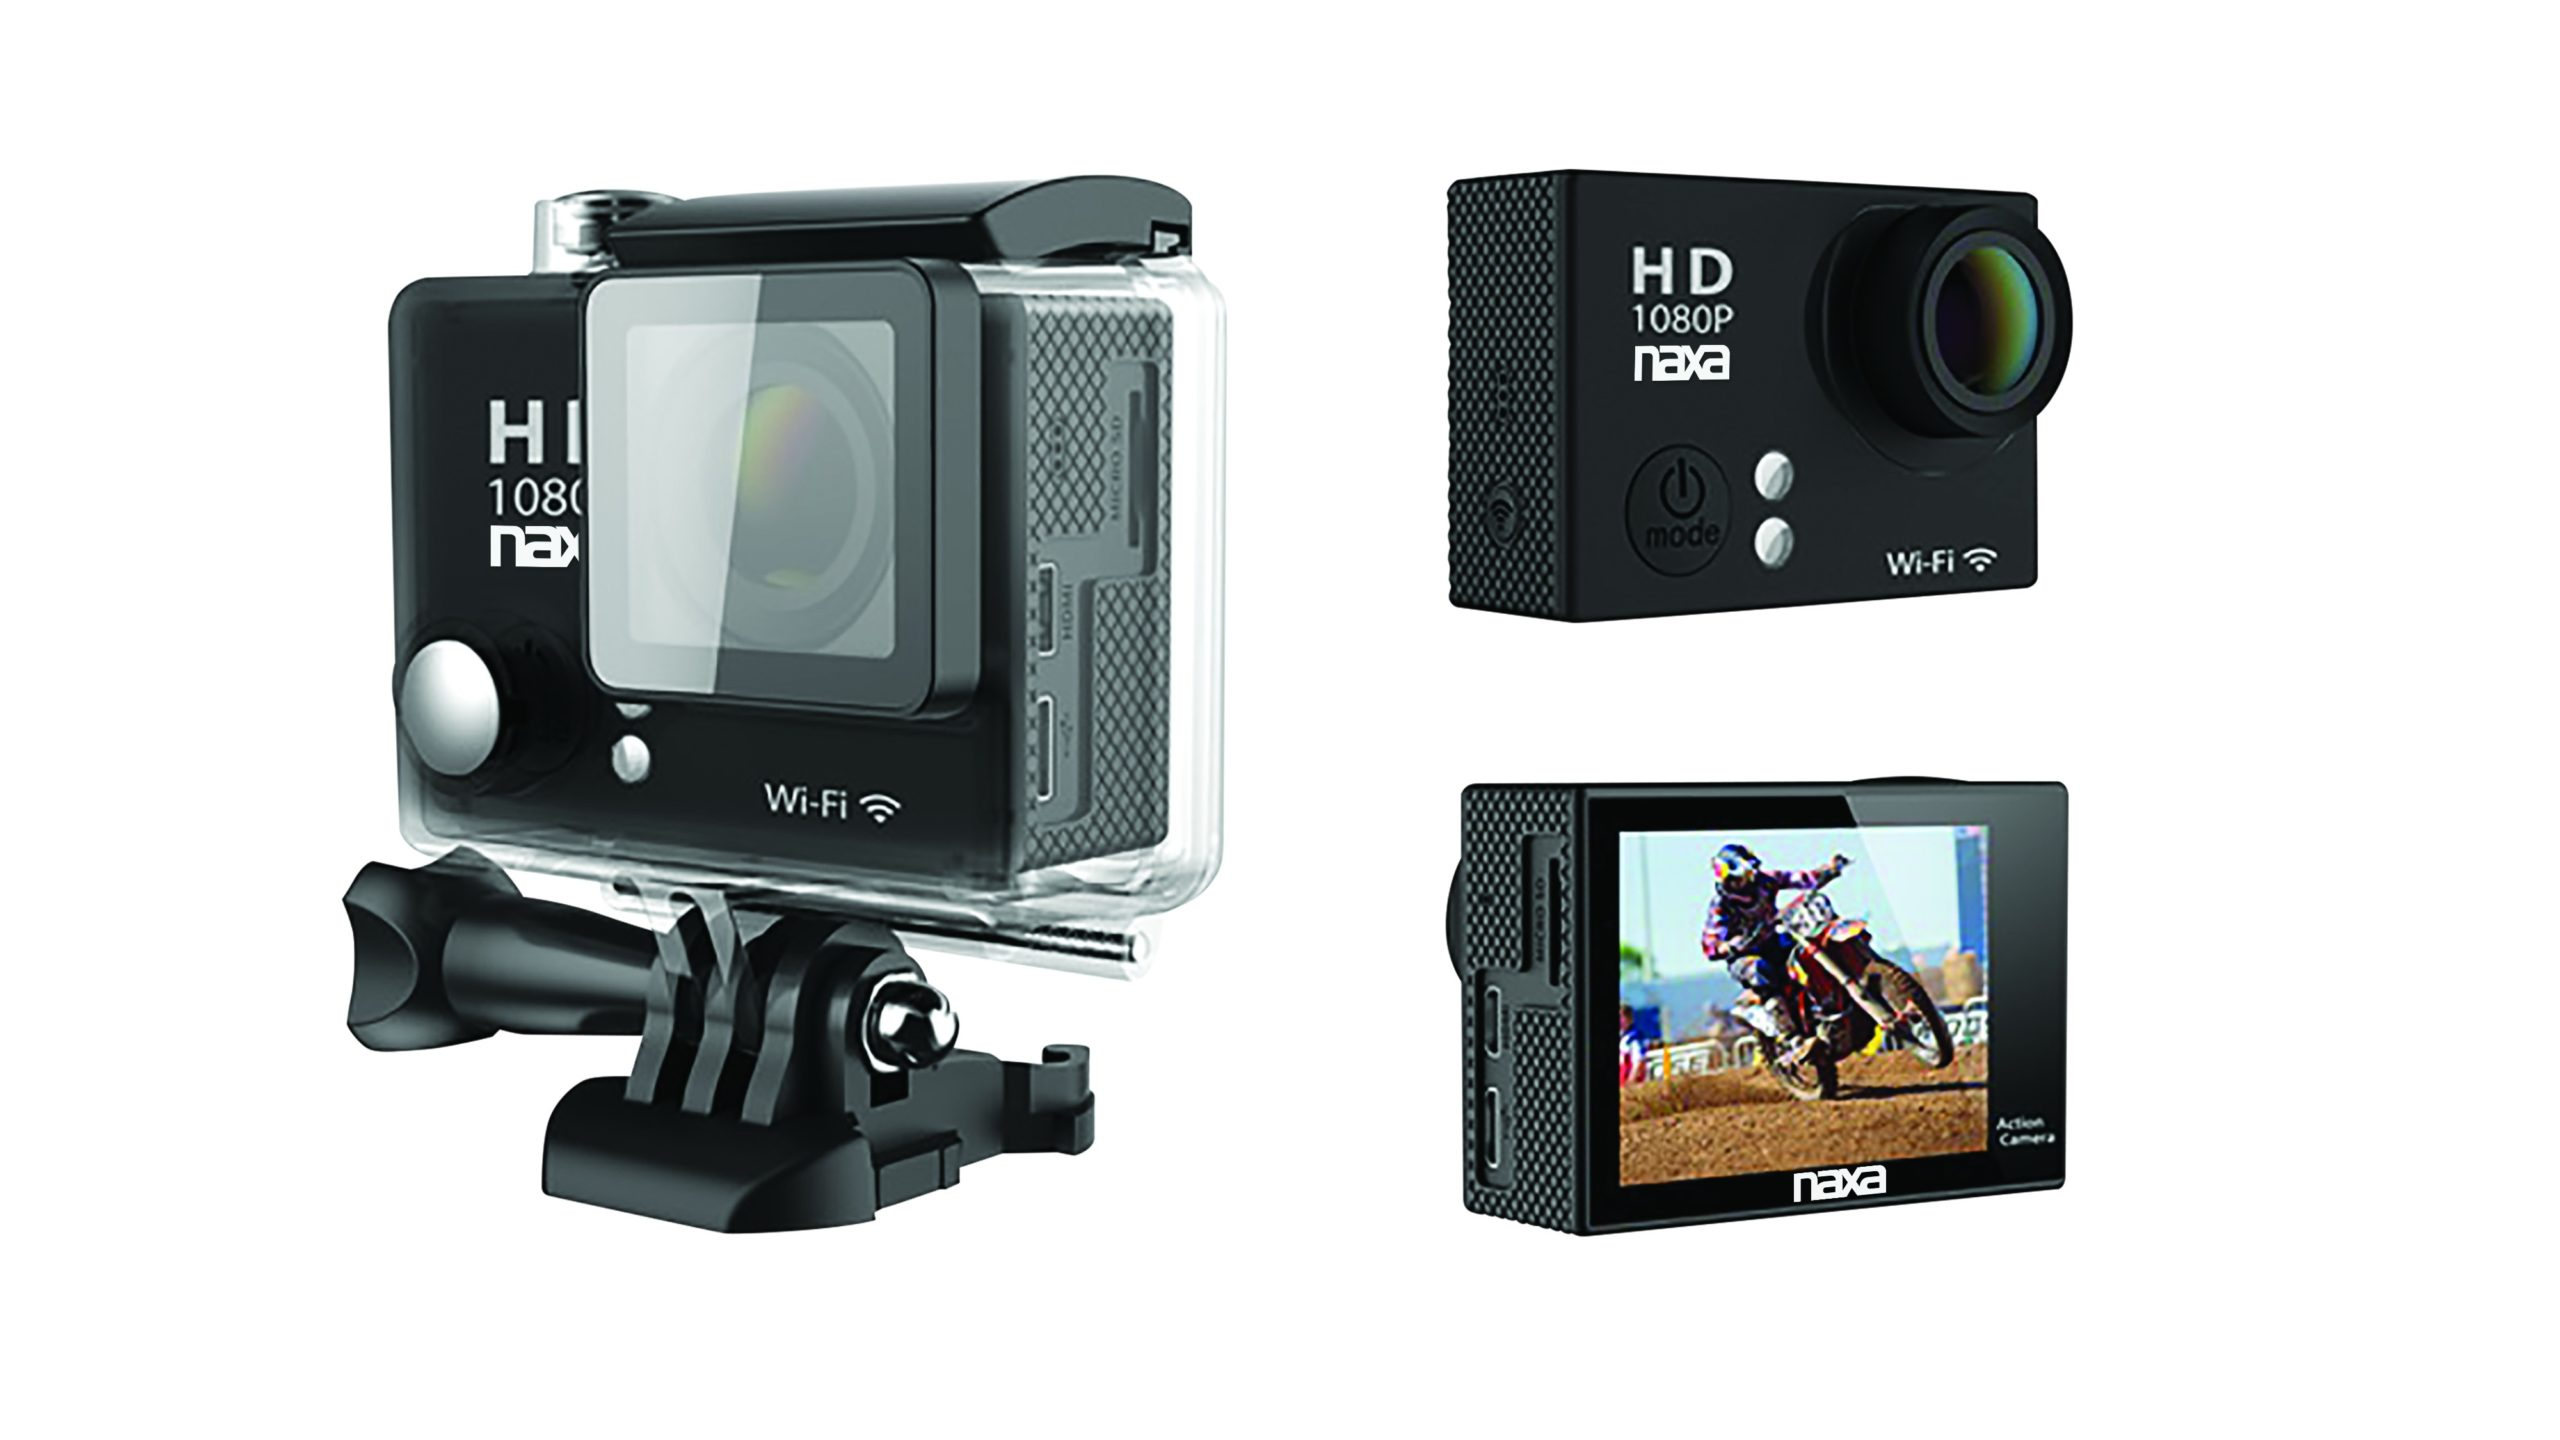 Waterproof HD 1080p Action Cam with Wi-Fi